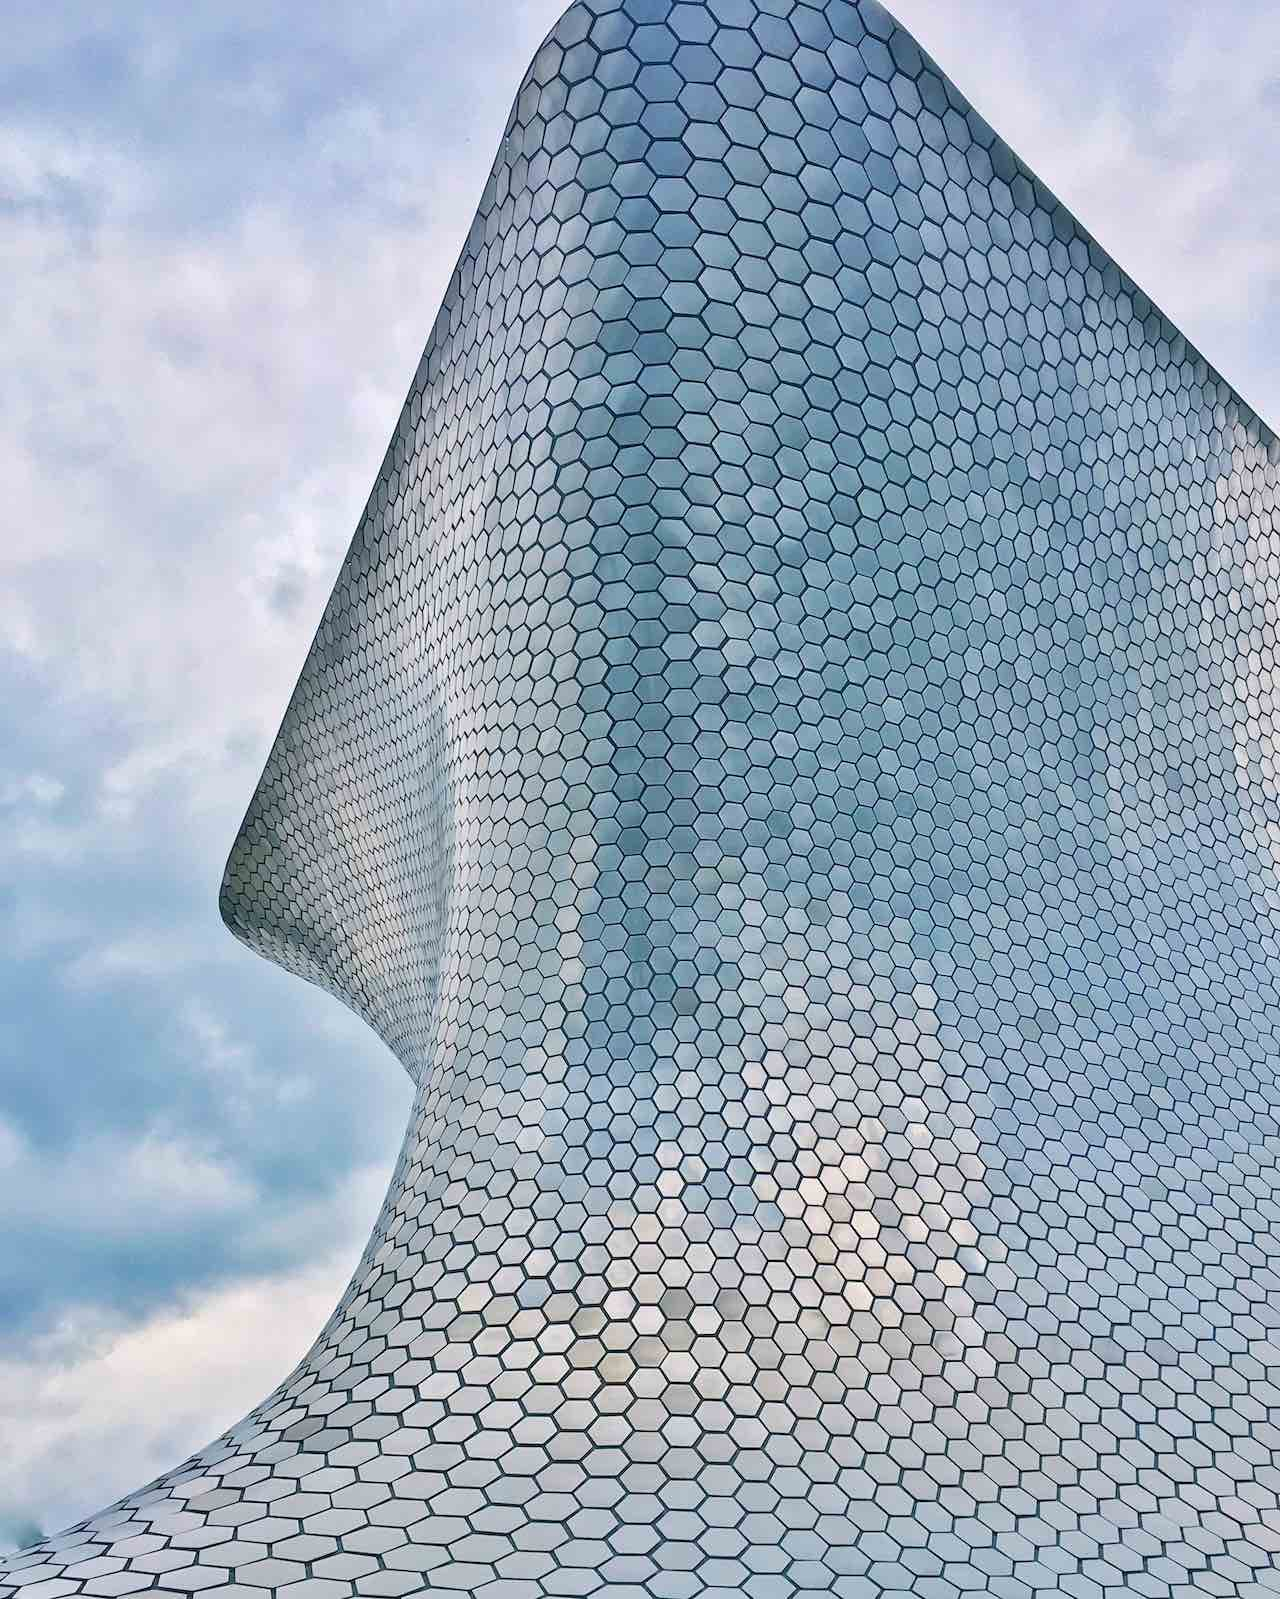 Soumaya Museum | Photo: Roque Estrada